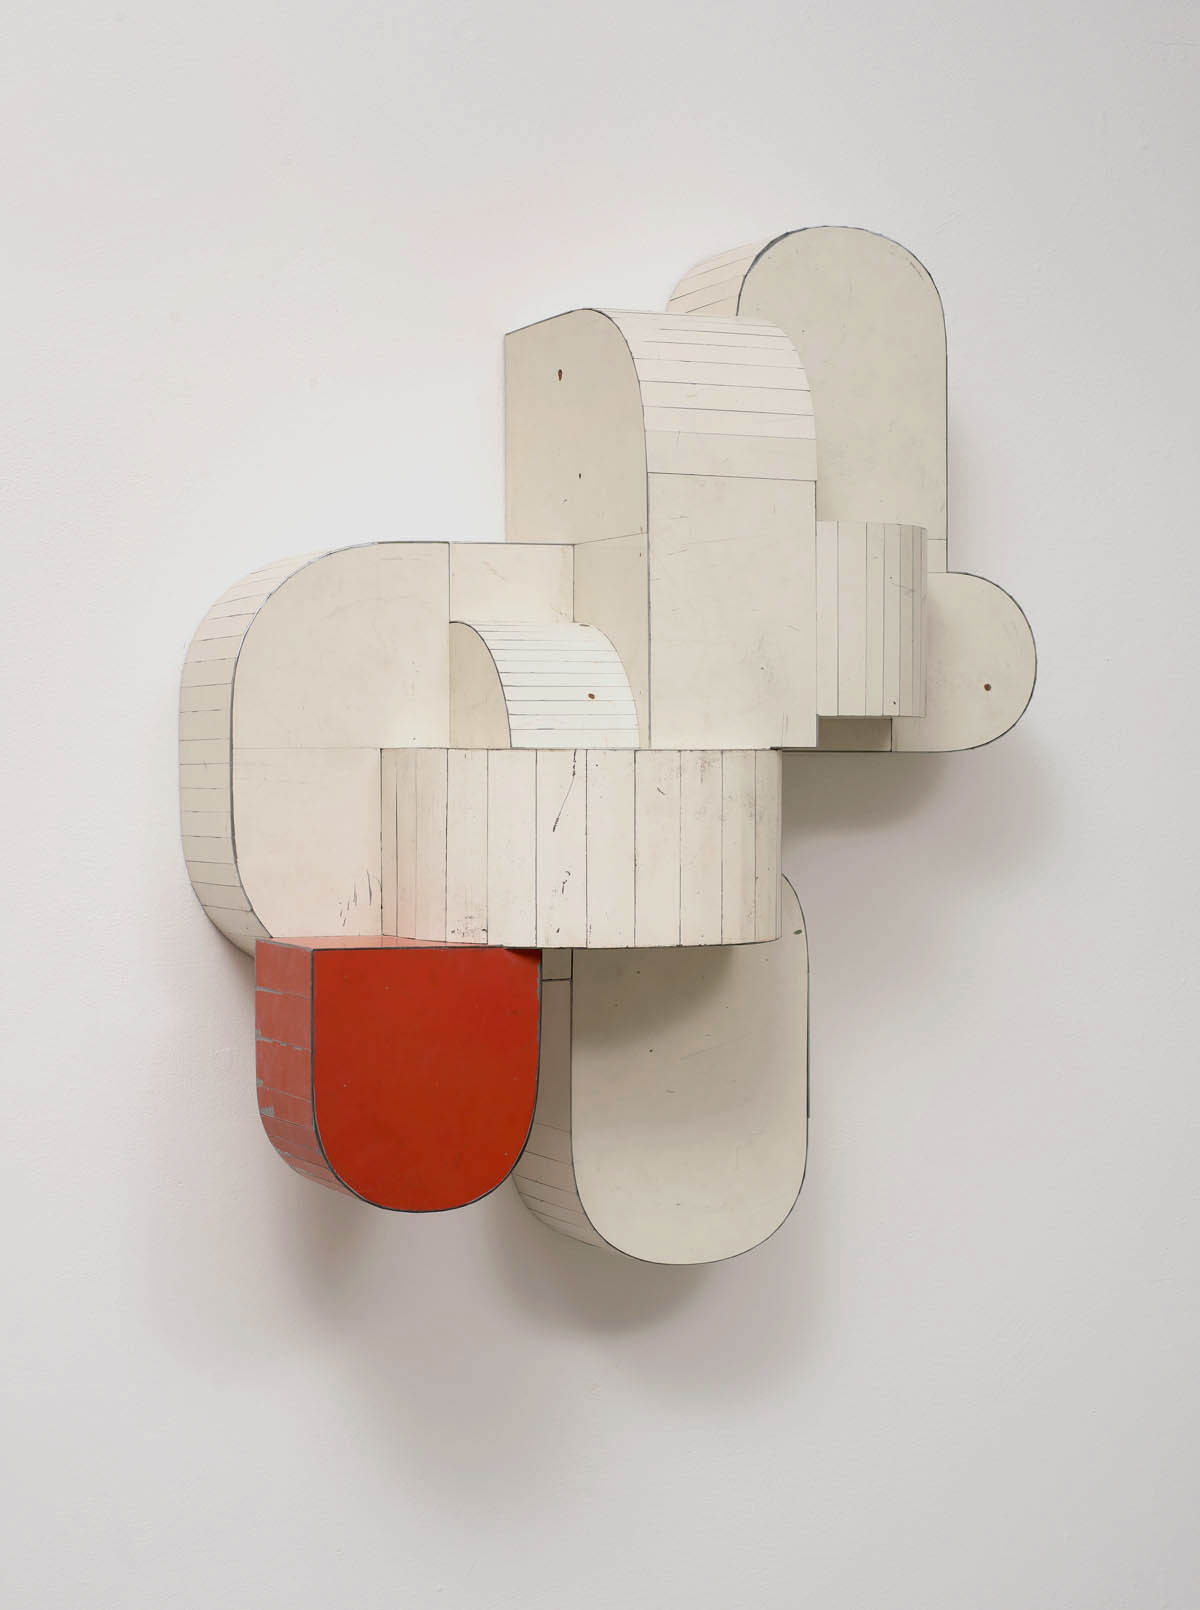 Safety Device, 2015, Salvage Steel, Marine-grade Plywood, Silicone, Vulcanized Rubber, Hardware, Chemicals, 60.96 x 50.8 x 20.32 cm.Consigned to Robischon Gallery, Denver, Colorado